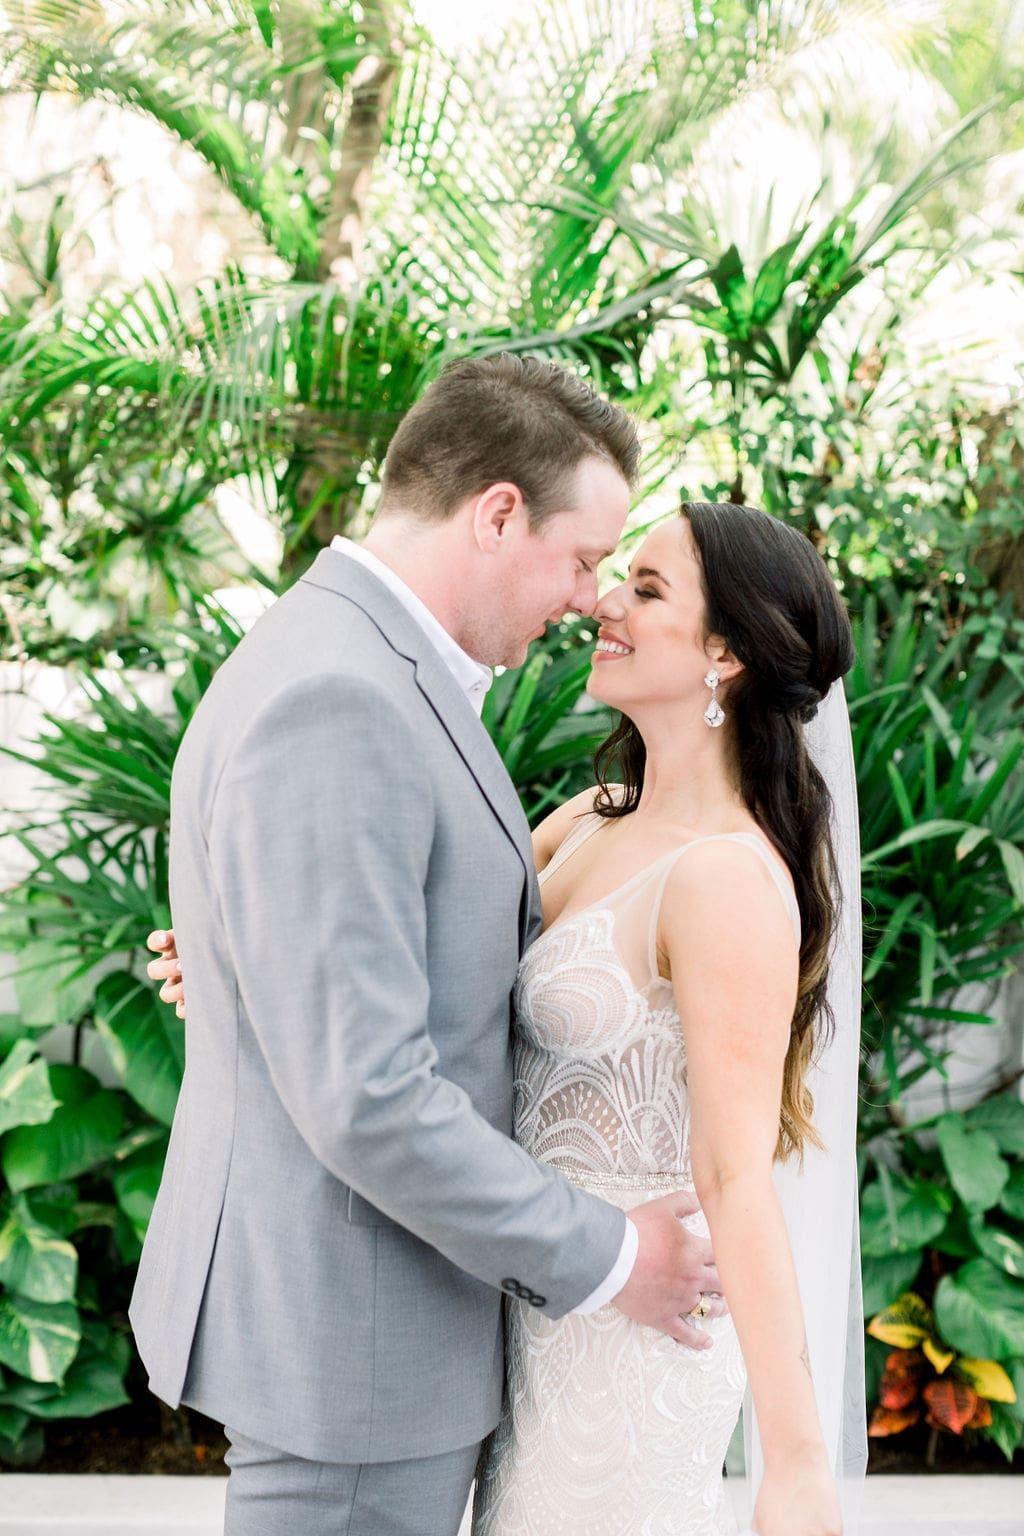 Mexican Destination Wedding With Green, Blush & Gold Tones